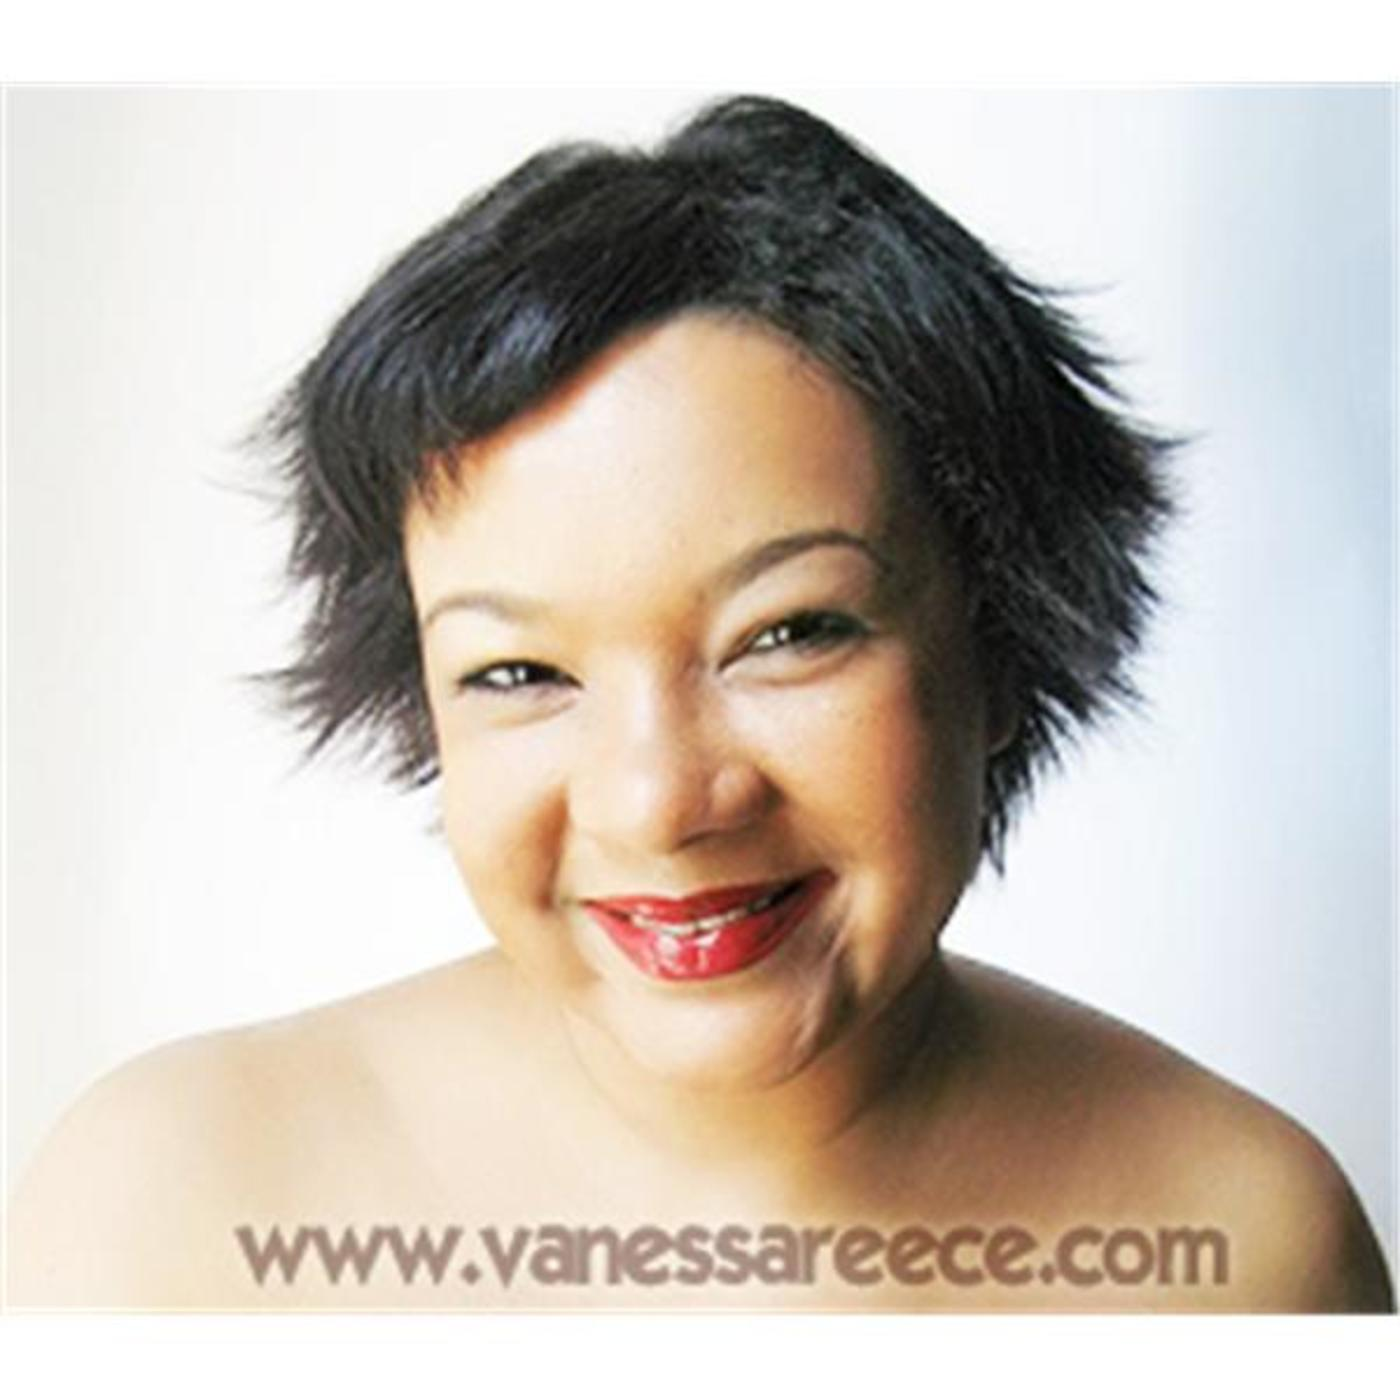 Bbw Chat vanessa reece - model, actress, size - acceptance reporter